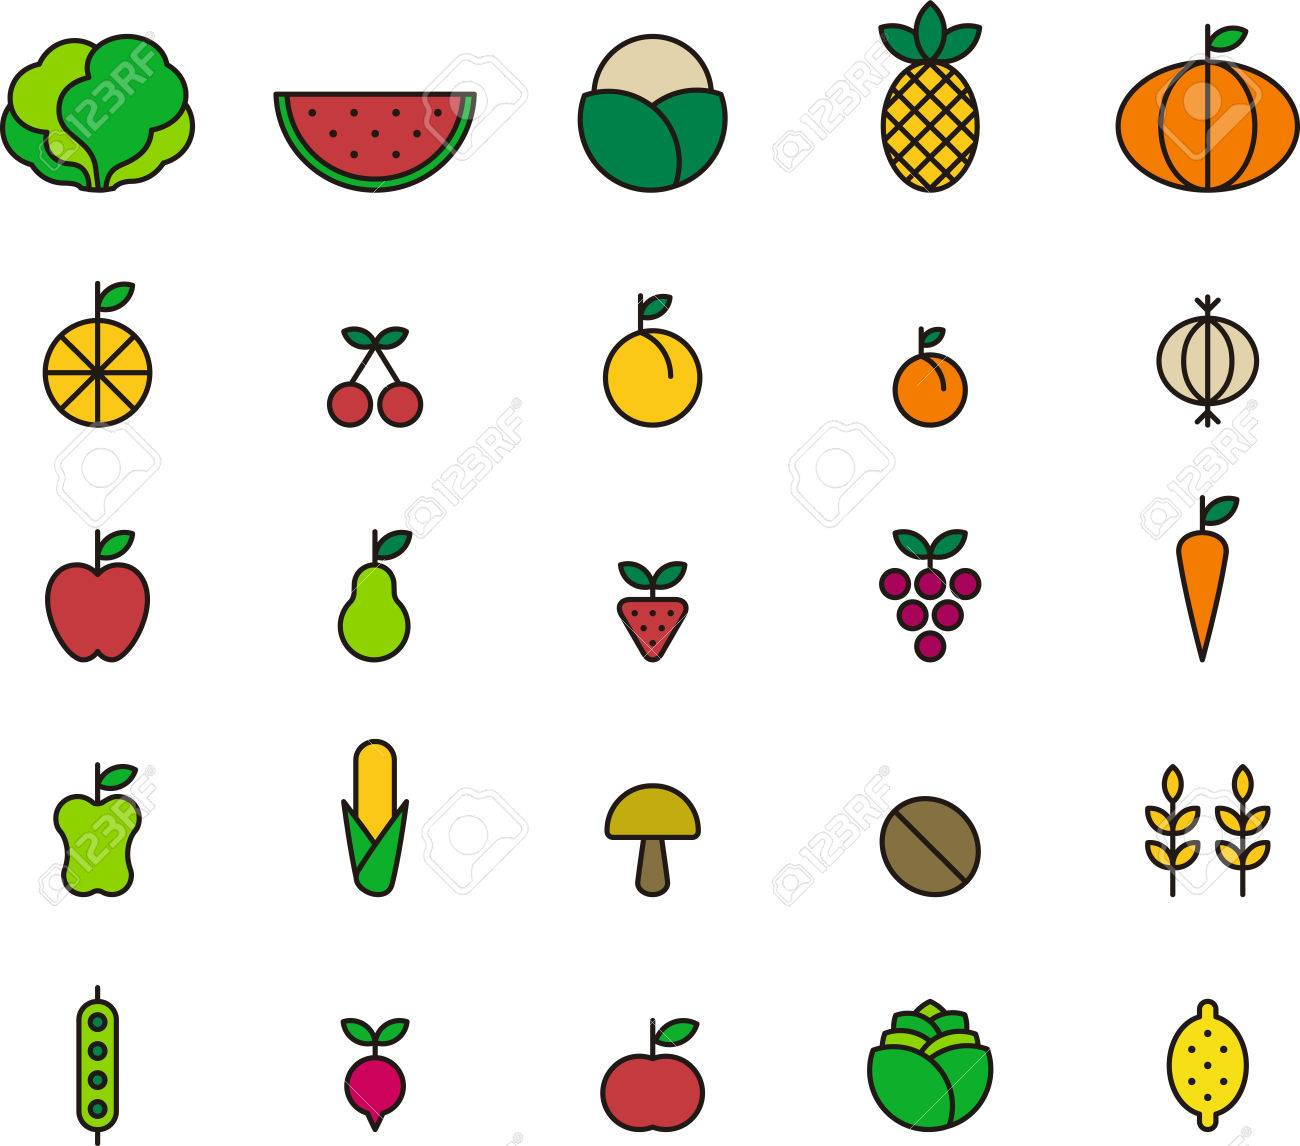 fruits u0026 vegetables colored outline icons royalty free cliparts